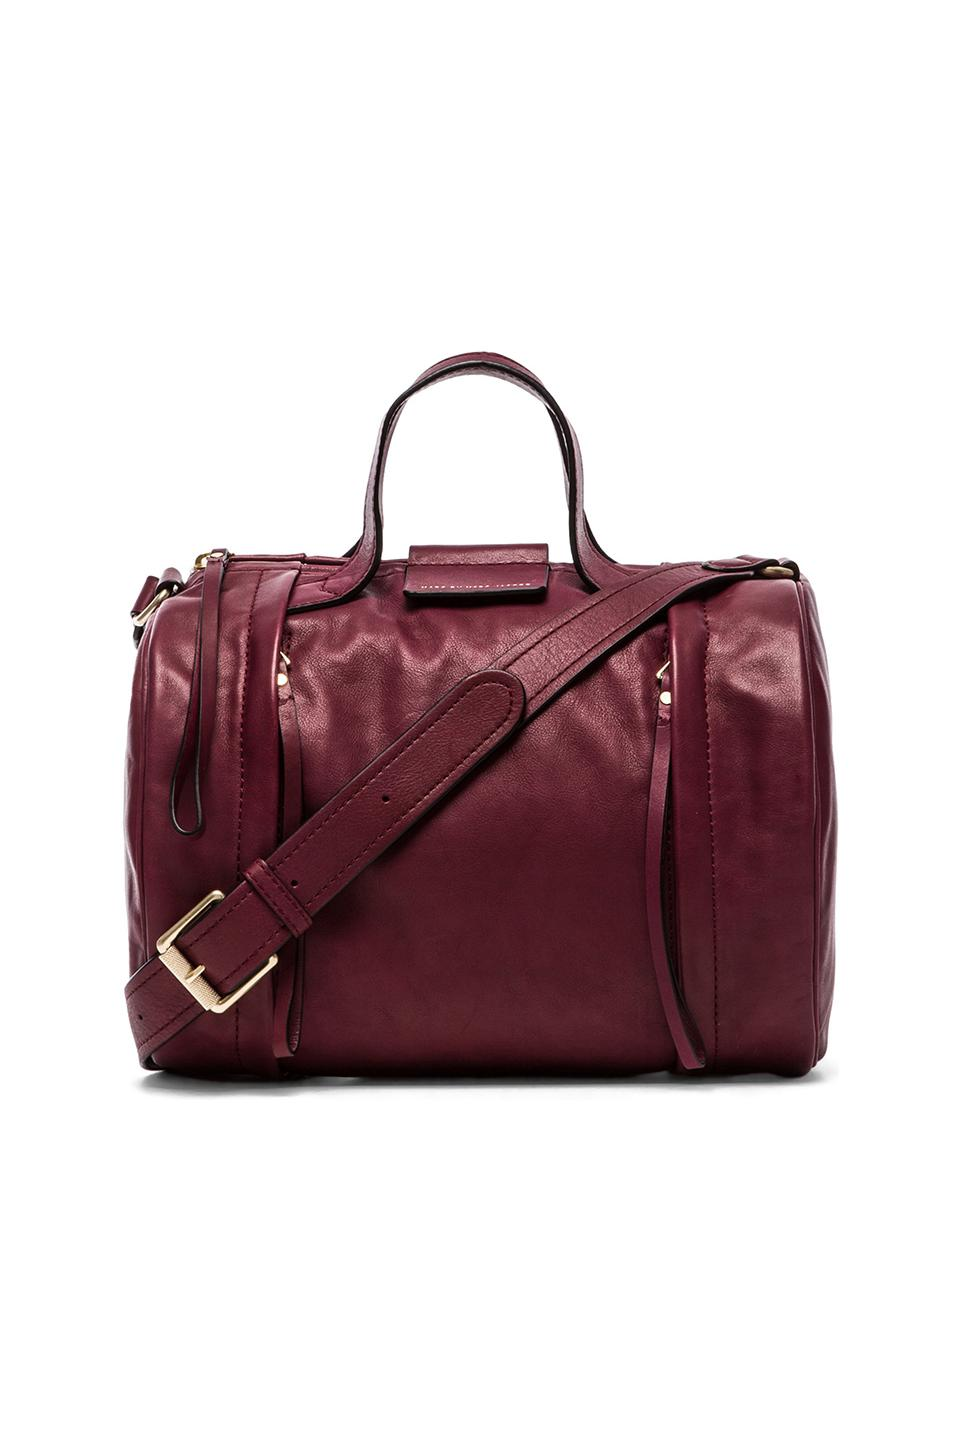 Marc by Marc Jacobs Moto Duffle in Washed Oxblood